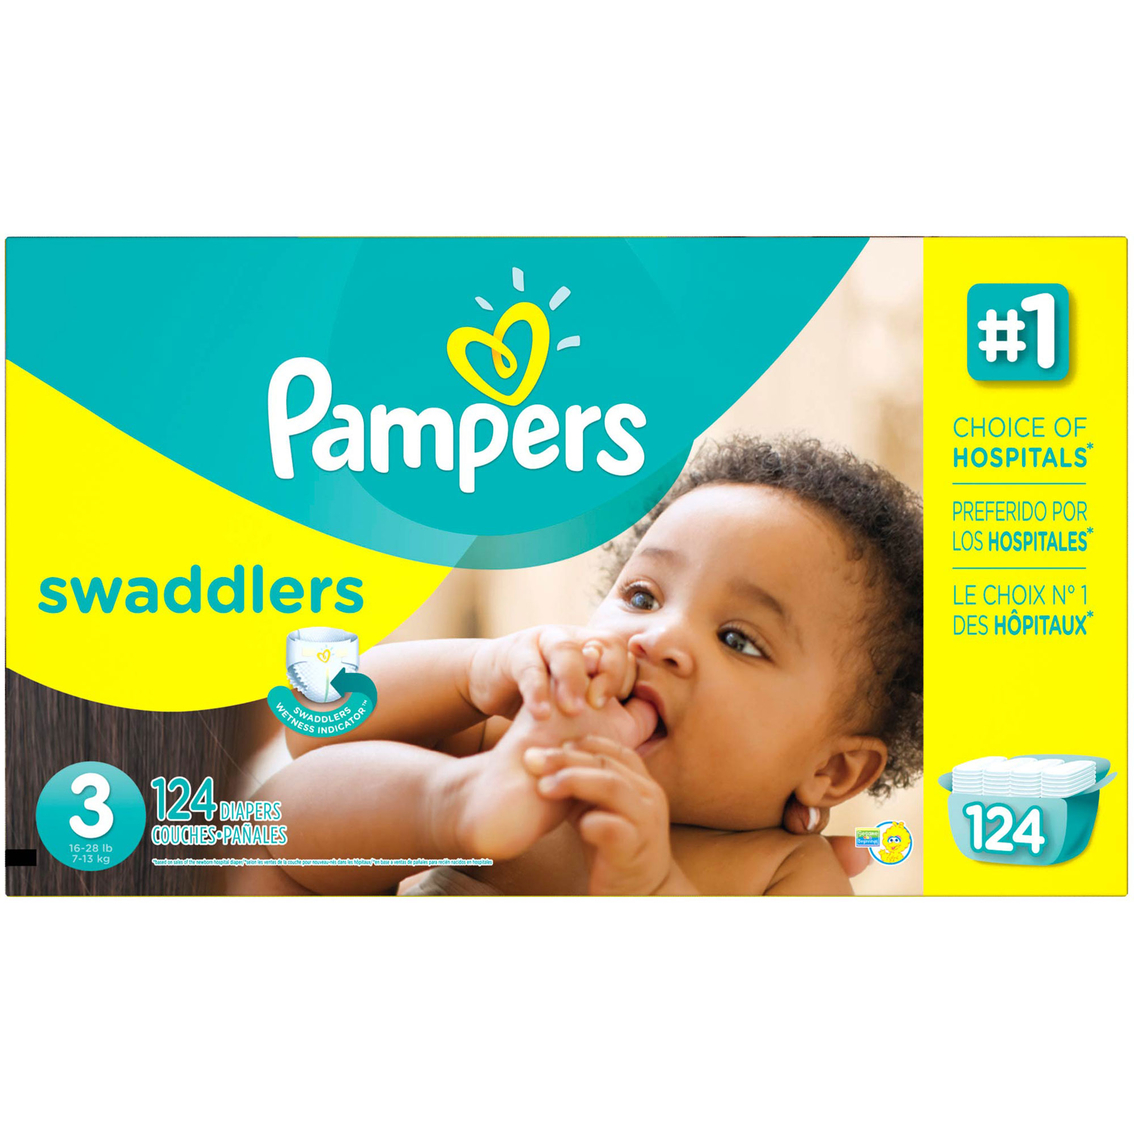 Pampers Swaddlers Giant Pack Diapers Size 3 (16-28 lb.), 124